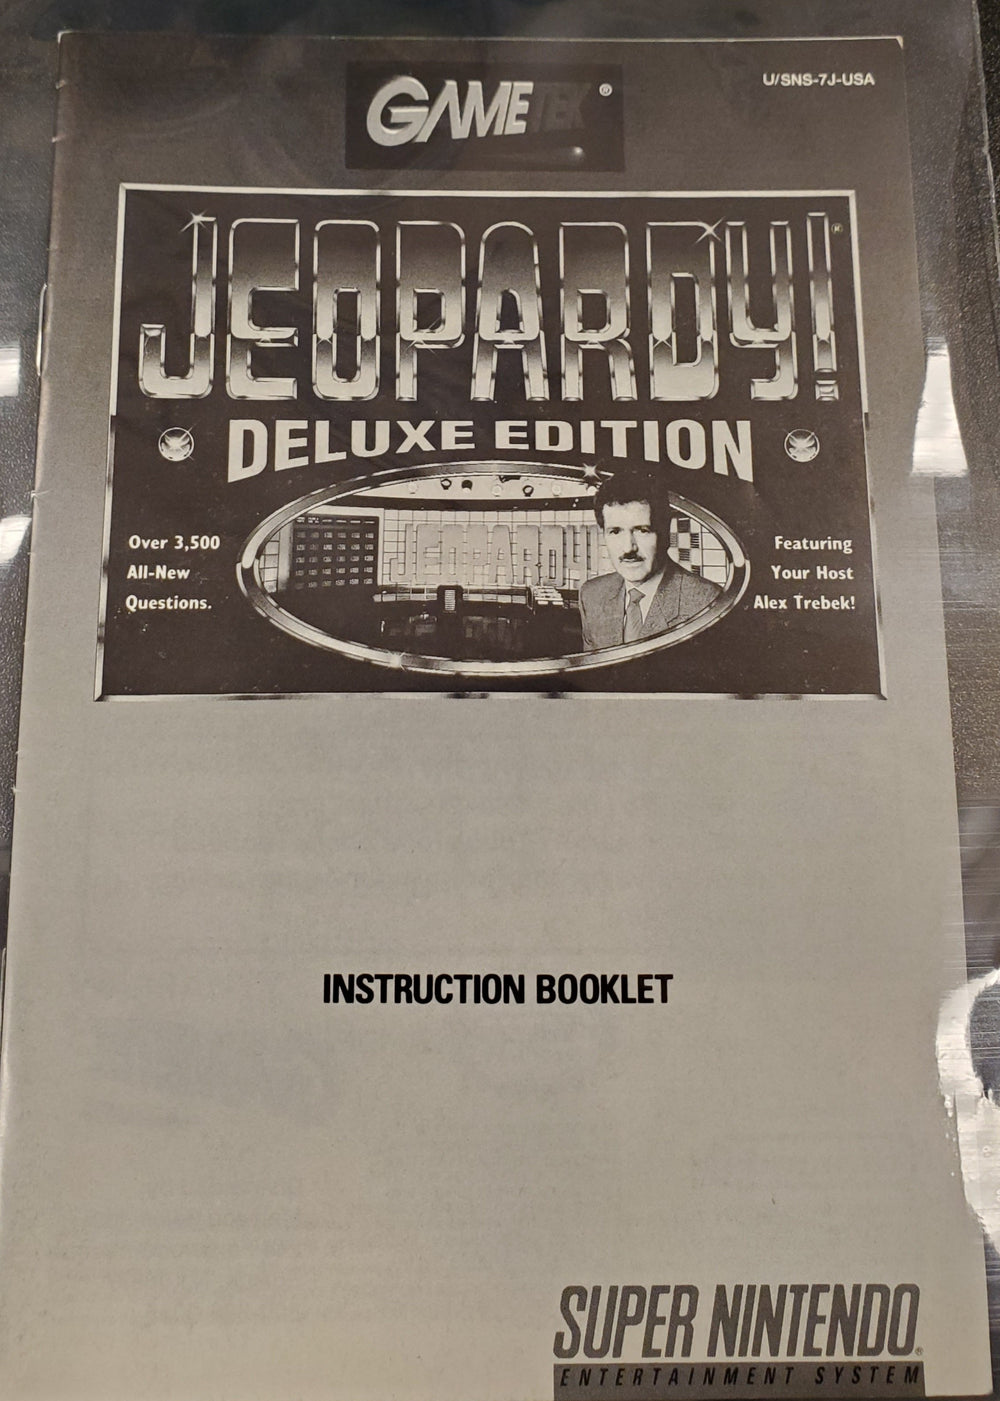 SNES - Jeopardy Deluxe Edition